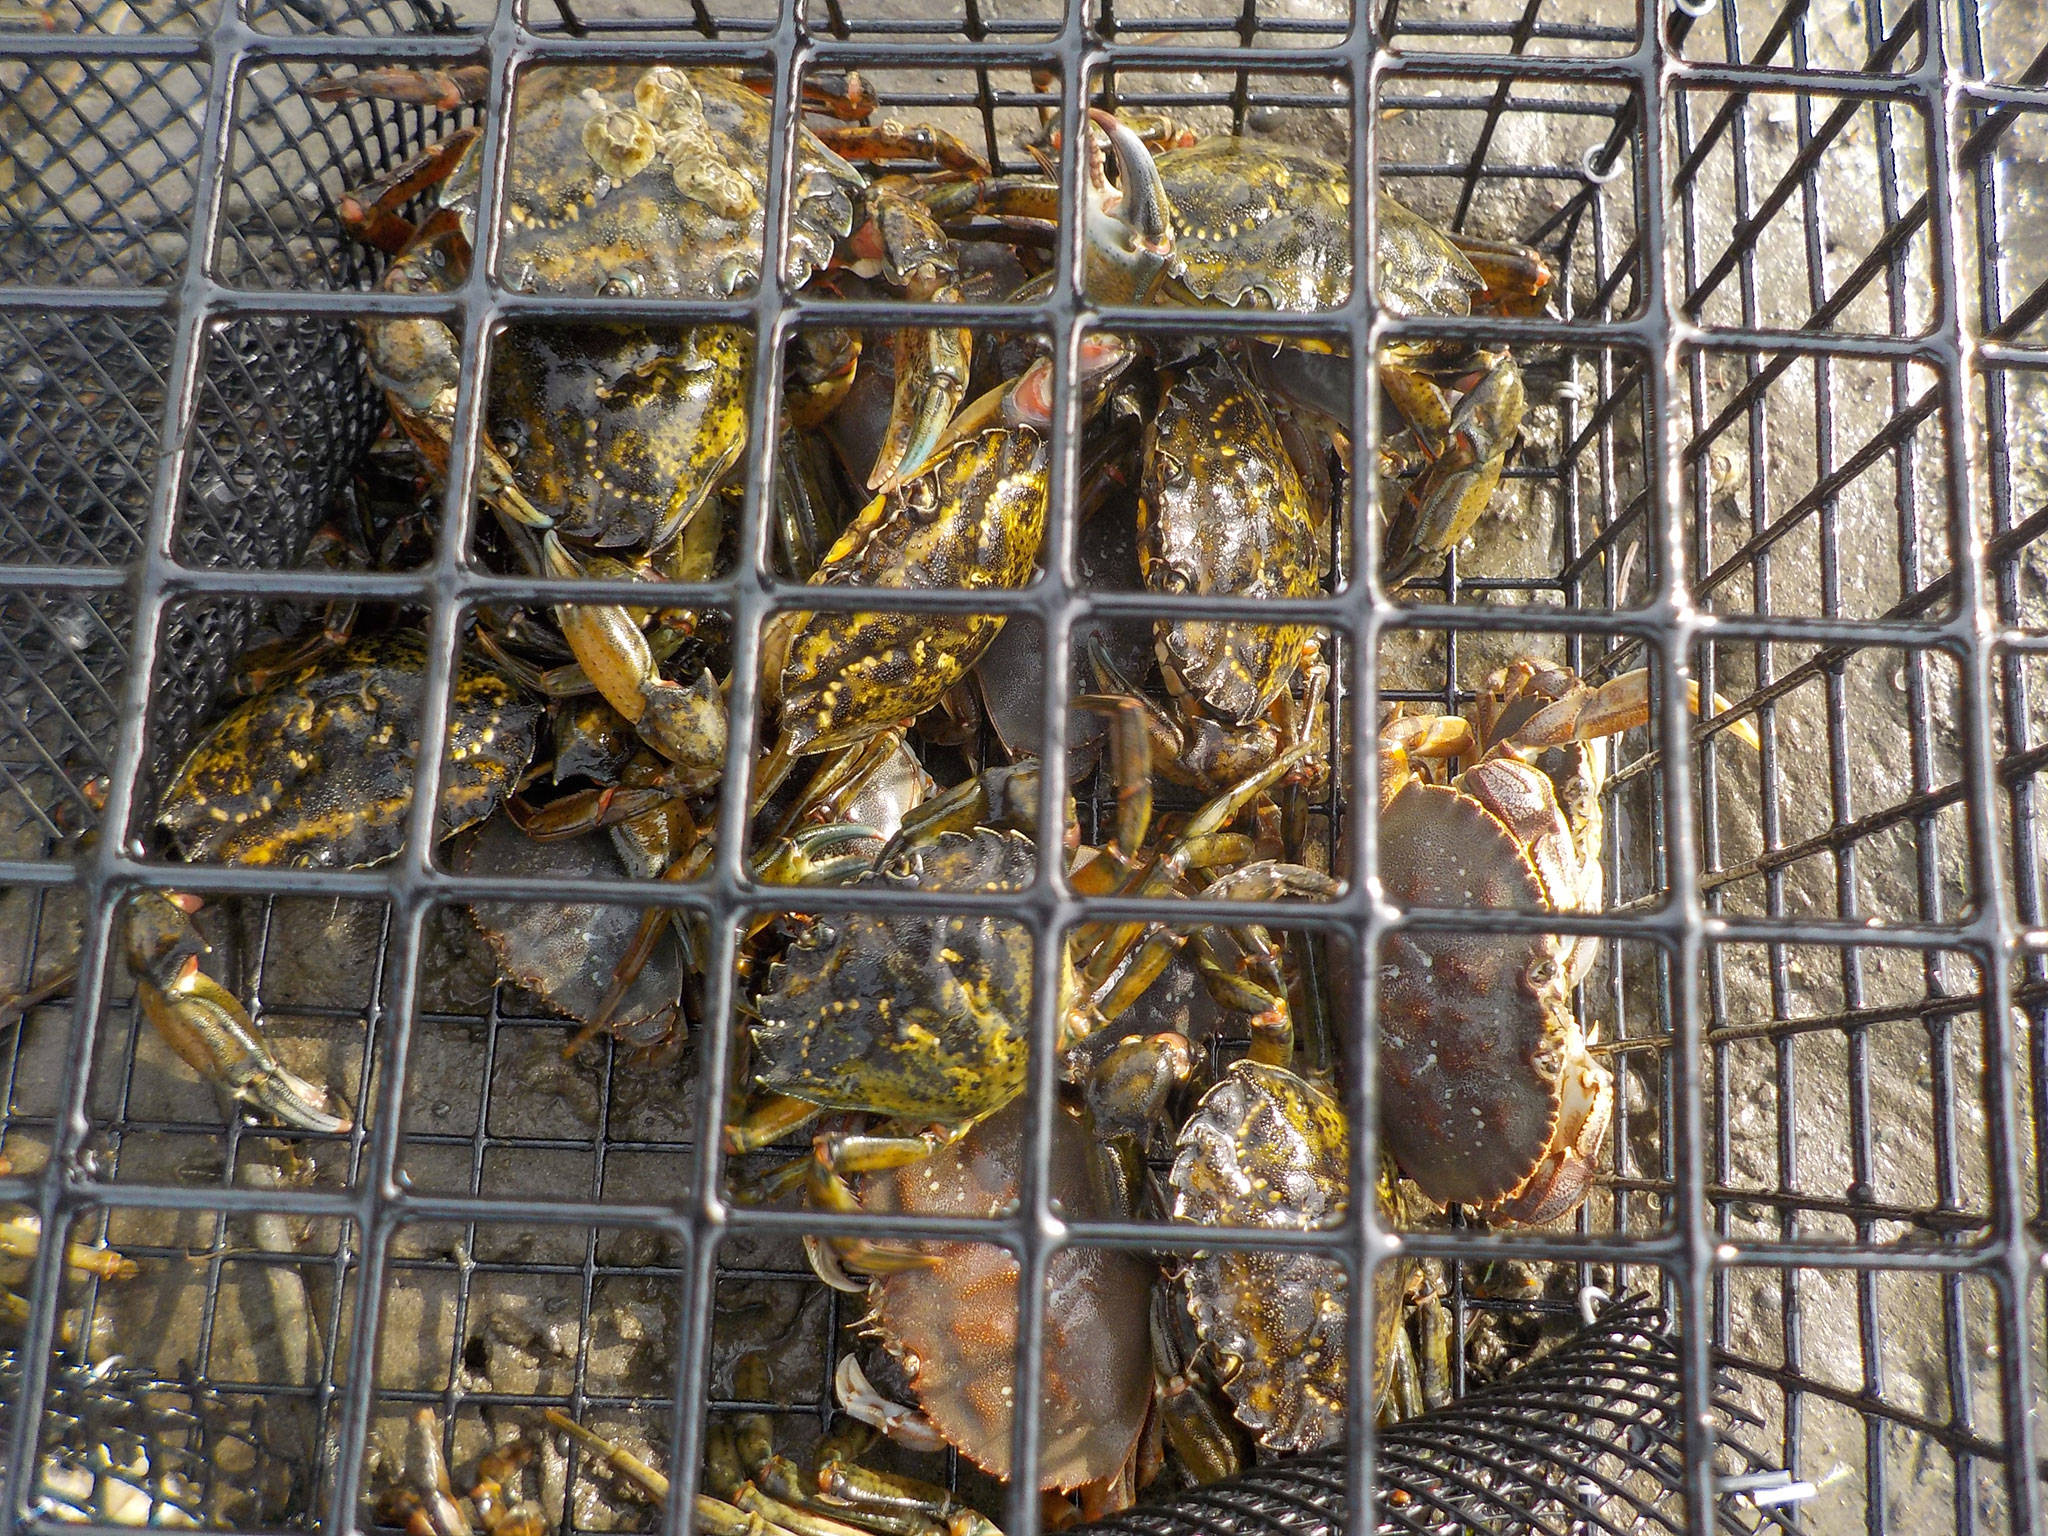 Left, last year, the Makah Tribe captured its highest total of European green crab but Adrianne Akmajian, a marine ecologist for the Makah Fisheries Management, said they might not begin trapping until May due to concerns for the spread of the coronavirus. Photo courtesy of Adrianne Akmajian